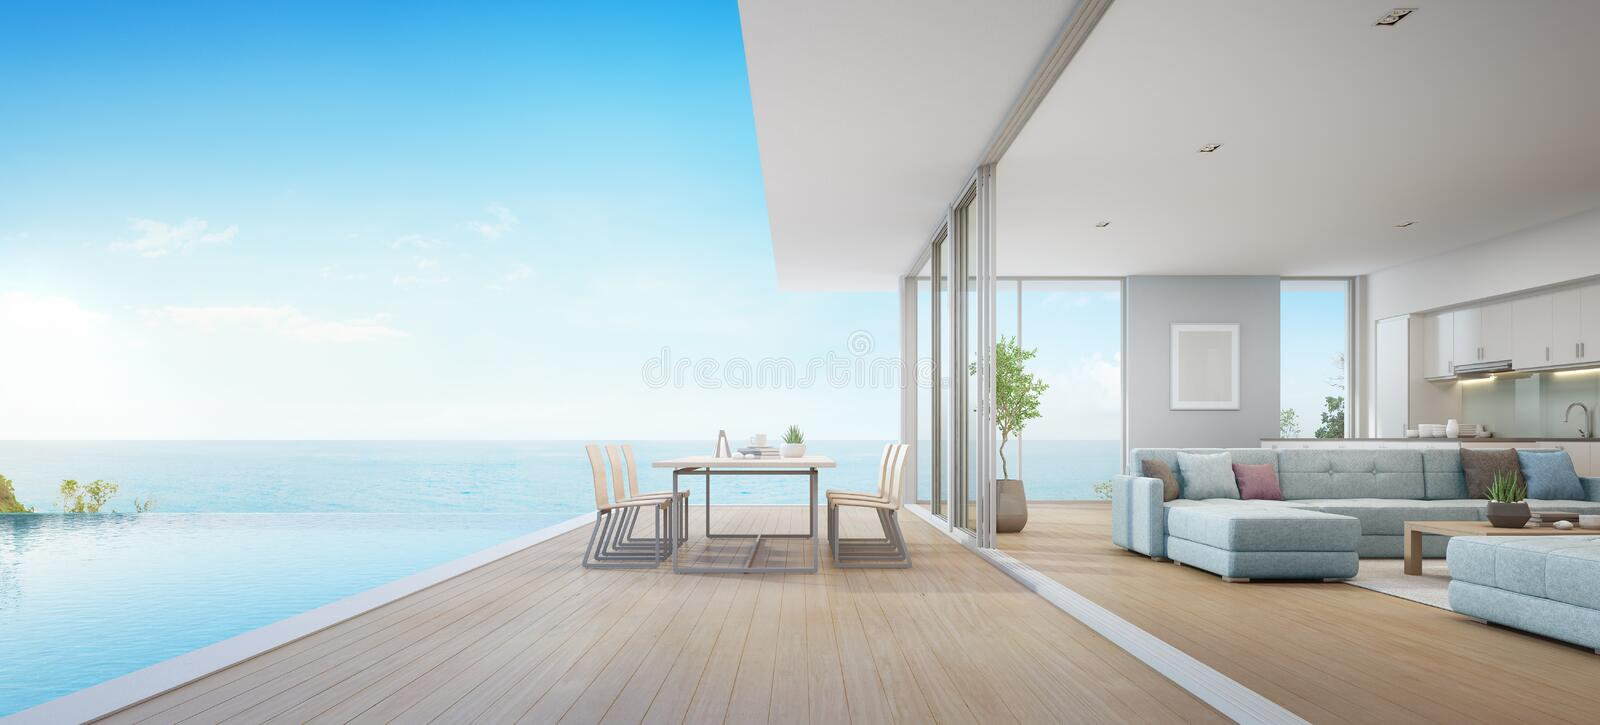 Outdoor dining and sea view living room beside kitchen of House with swimming pool in living room